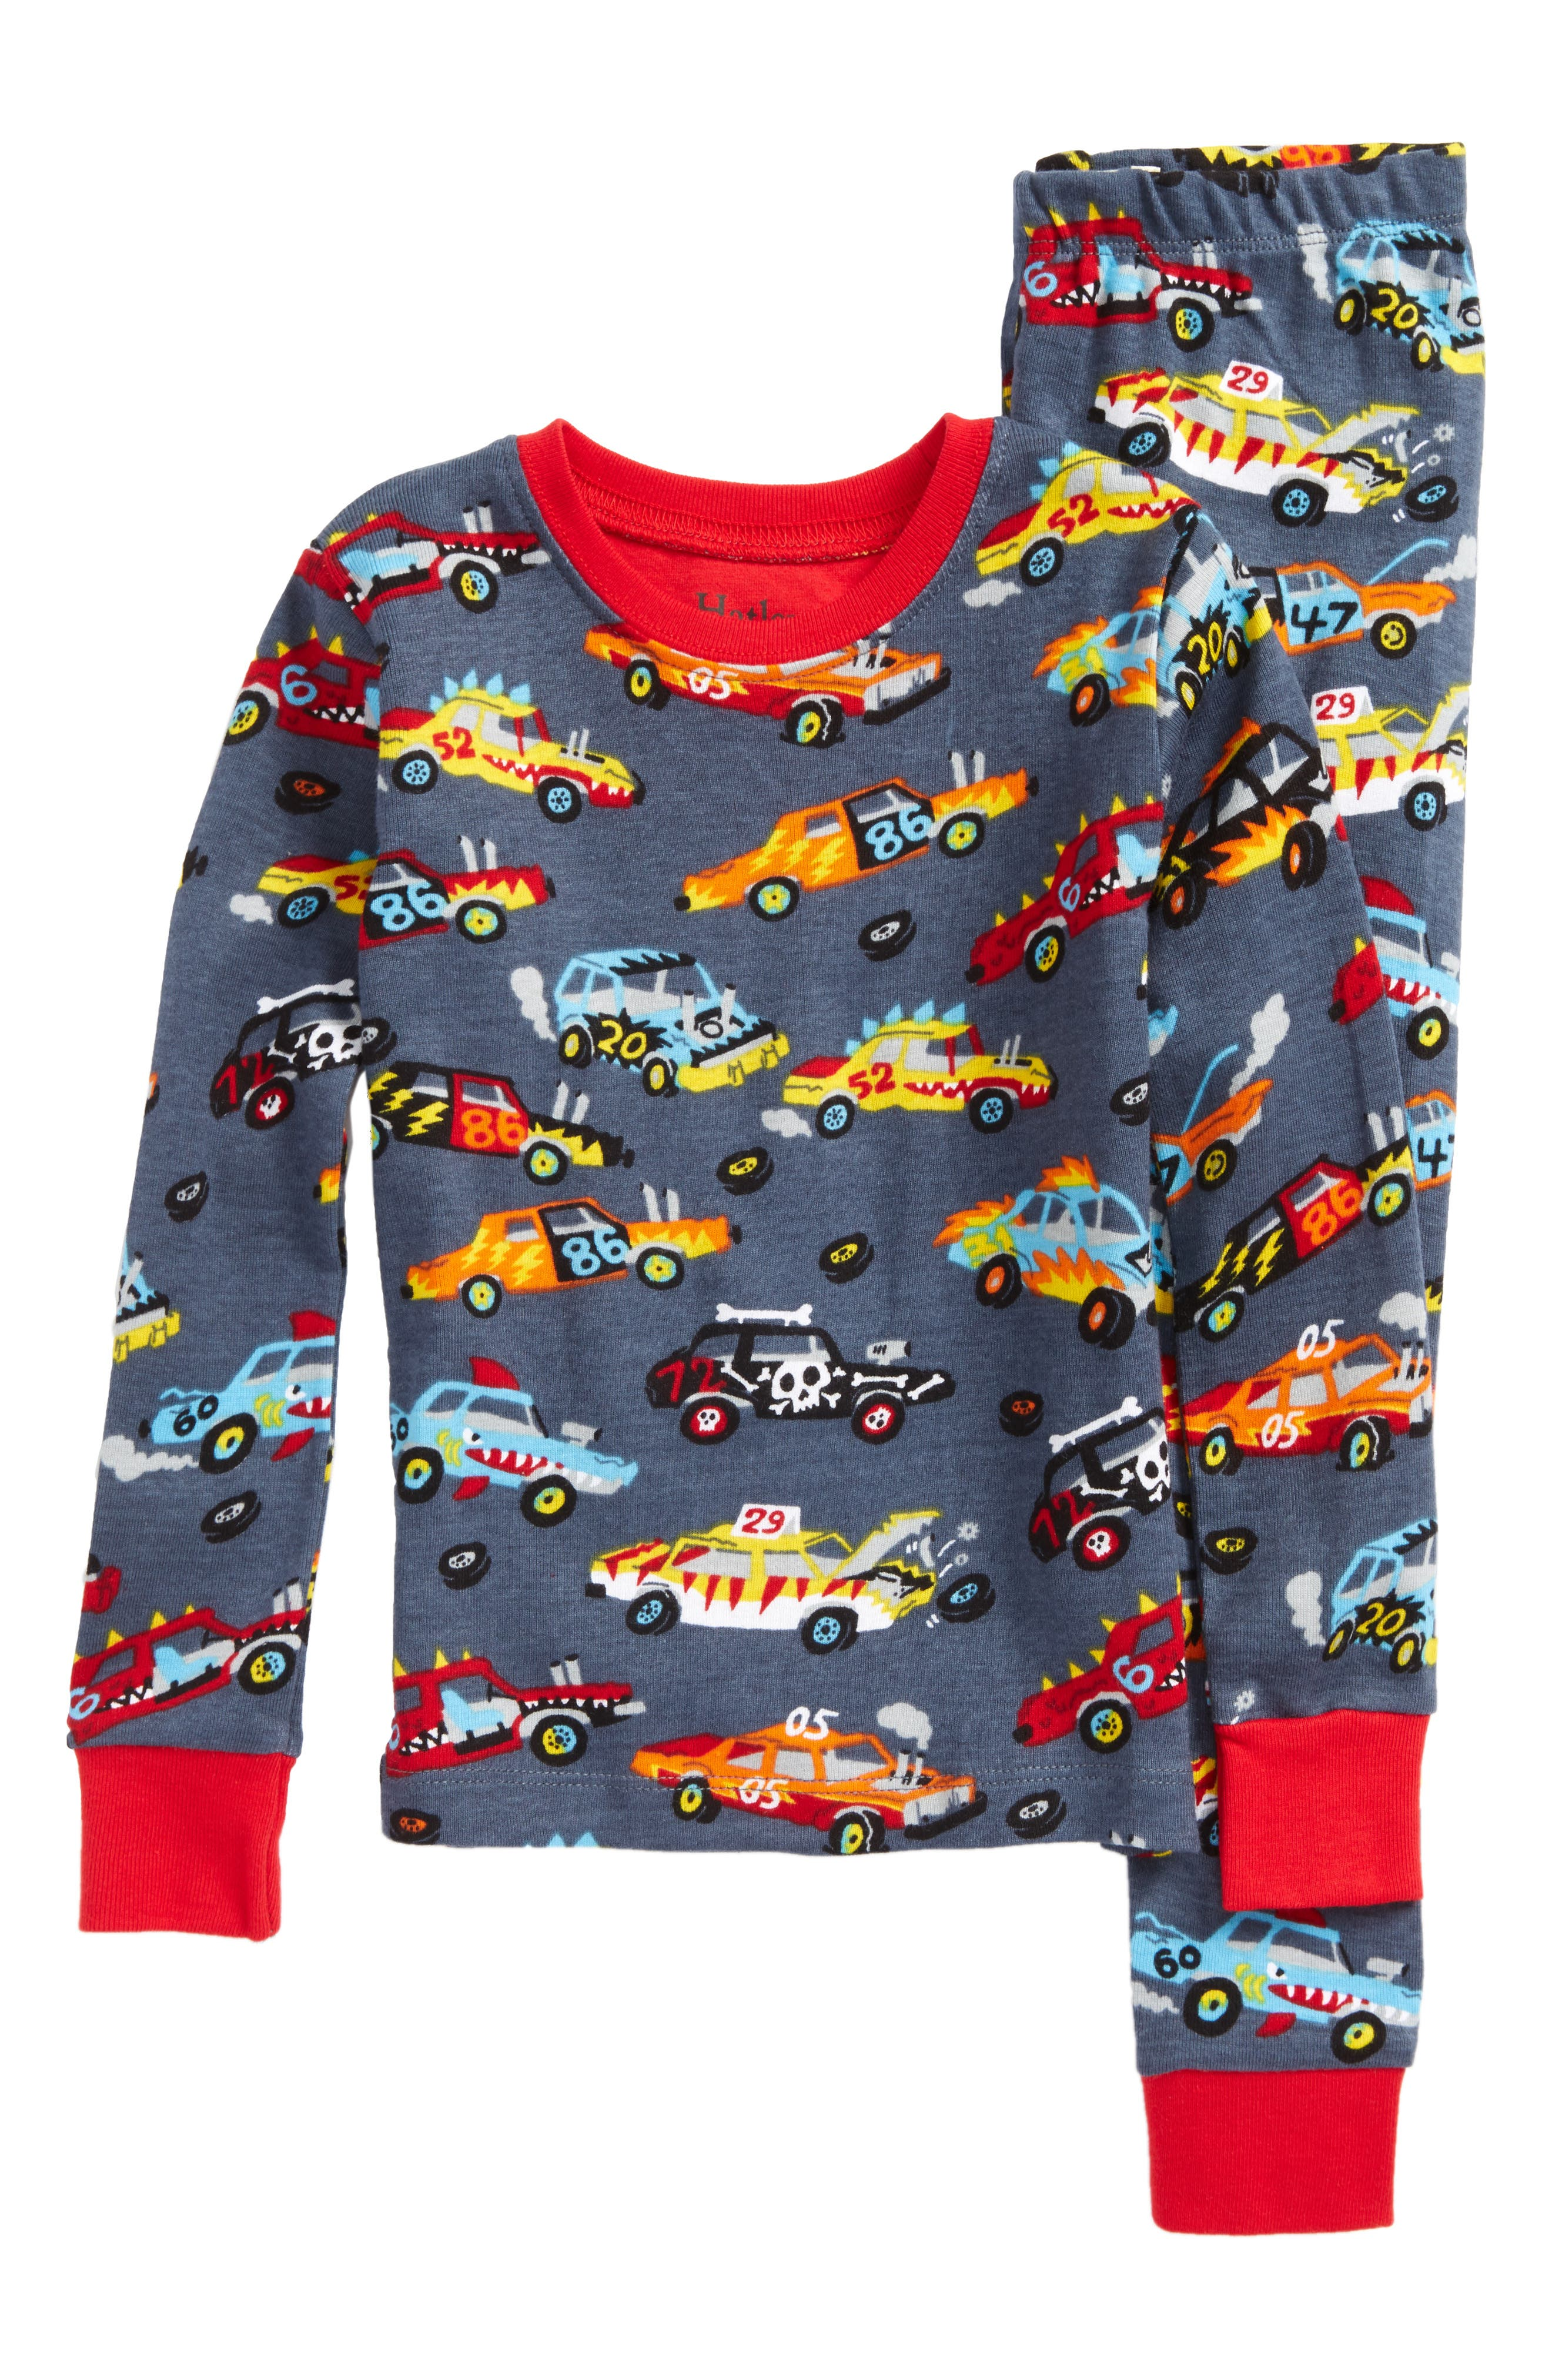 Alternate Image 1 Selected - Hatley Organic Cotton Fitted Two-Piece Pajamas (Toddler Boys, Little Boys & Big Boys)